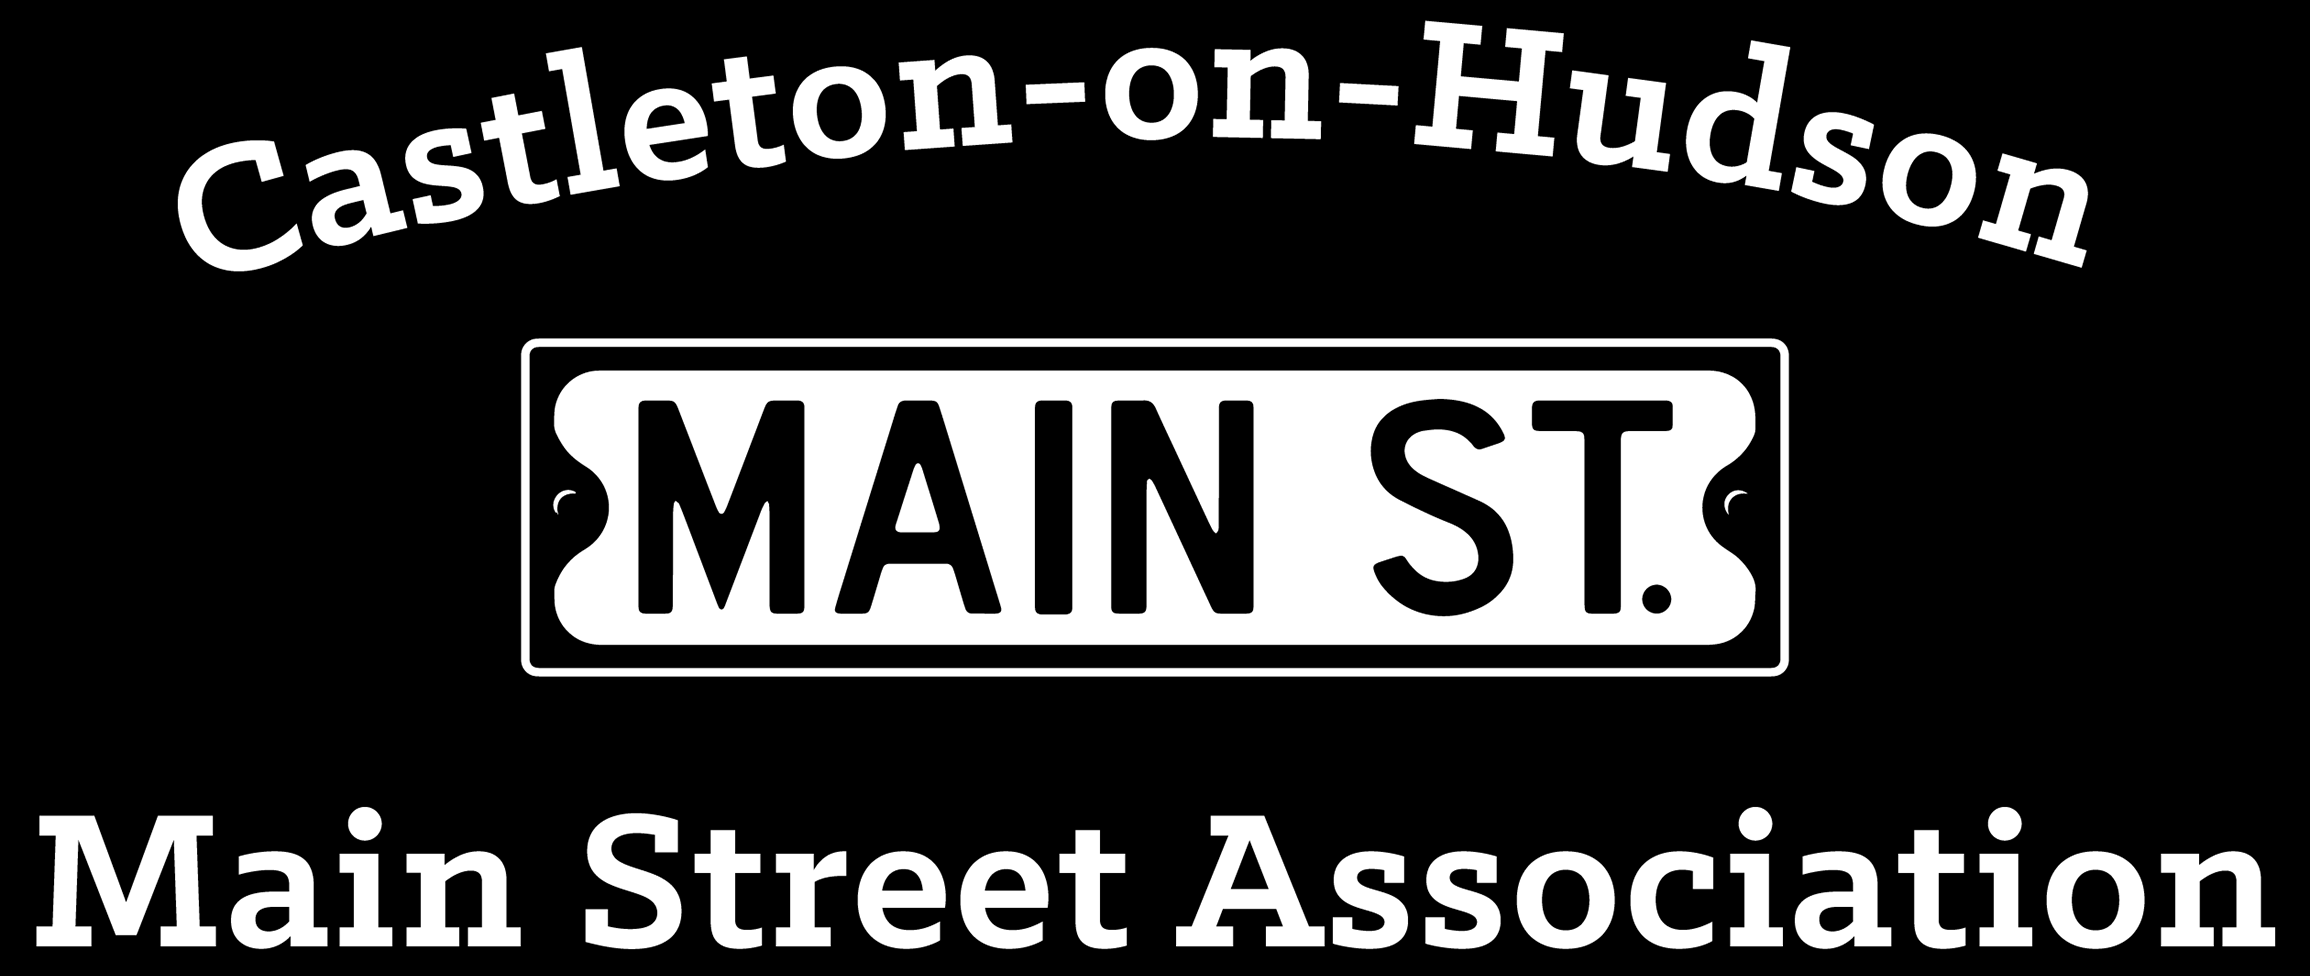 Castleton-on-Hudson Main Street Association